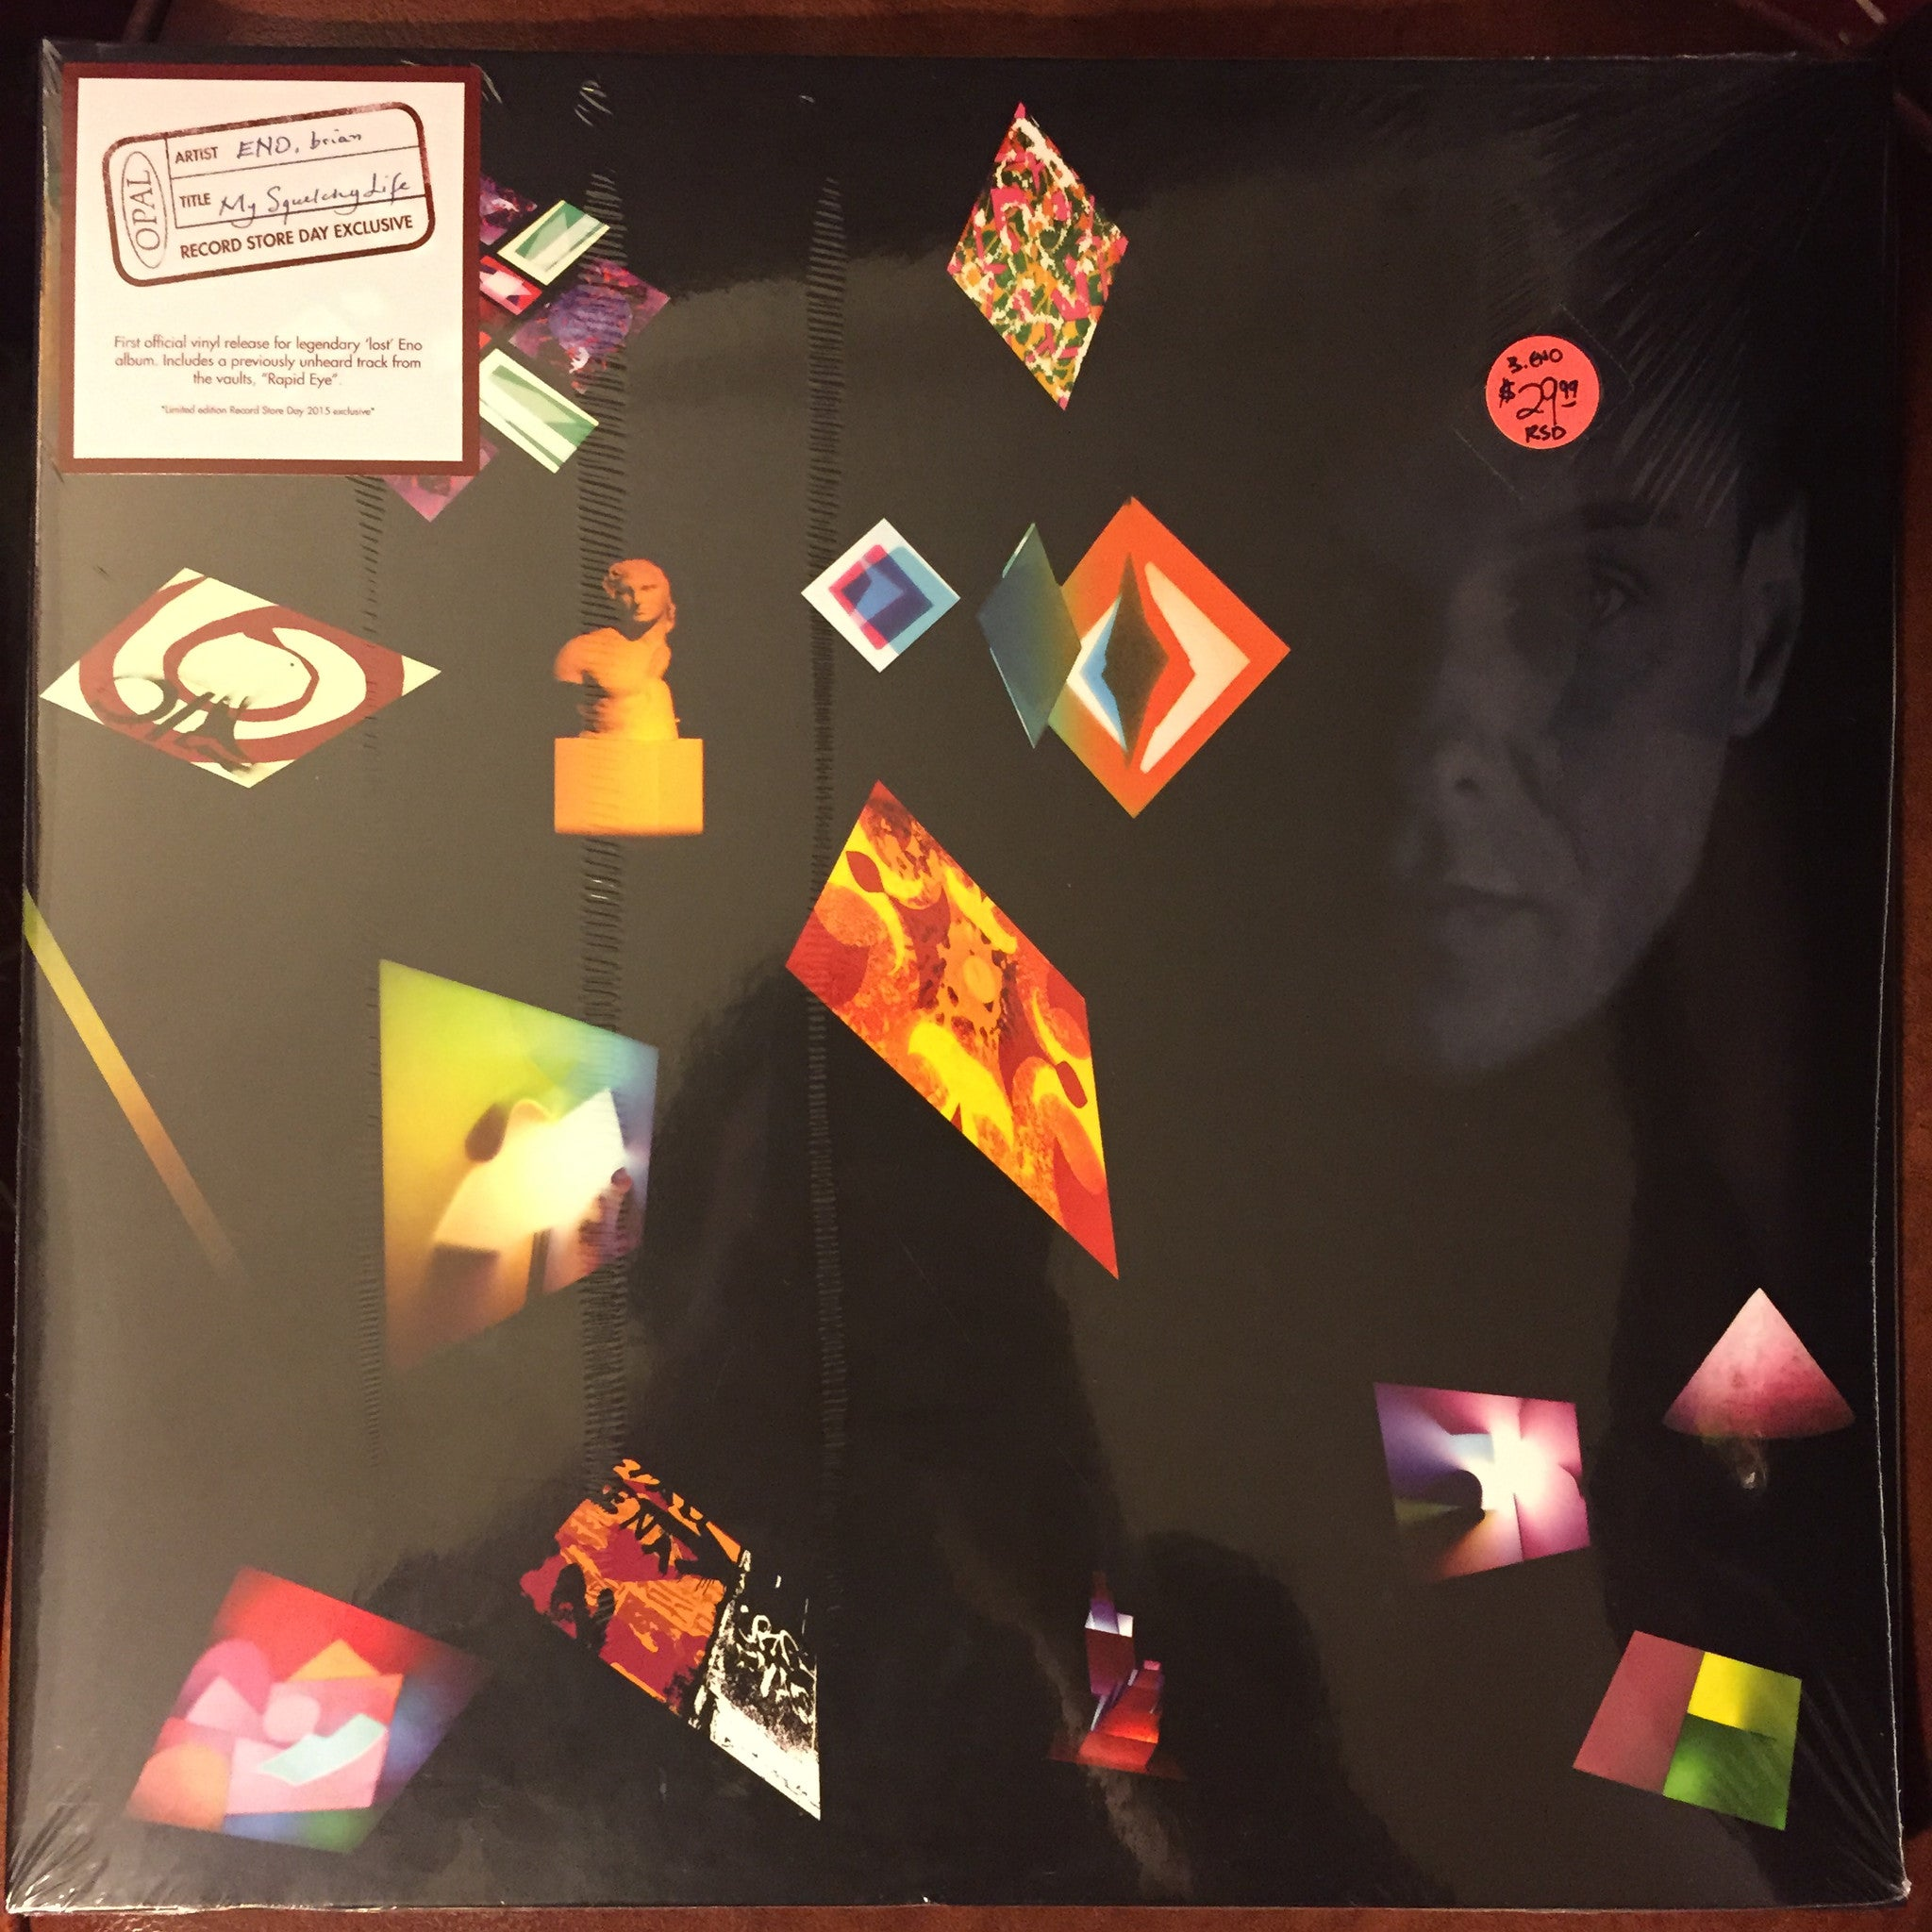 Brian Eno - My Squelchy Life 2xLP - RSD 2015 NEW SEALED